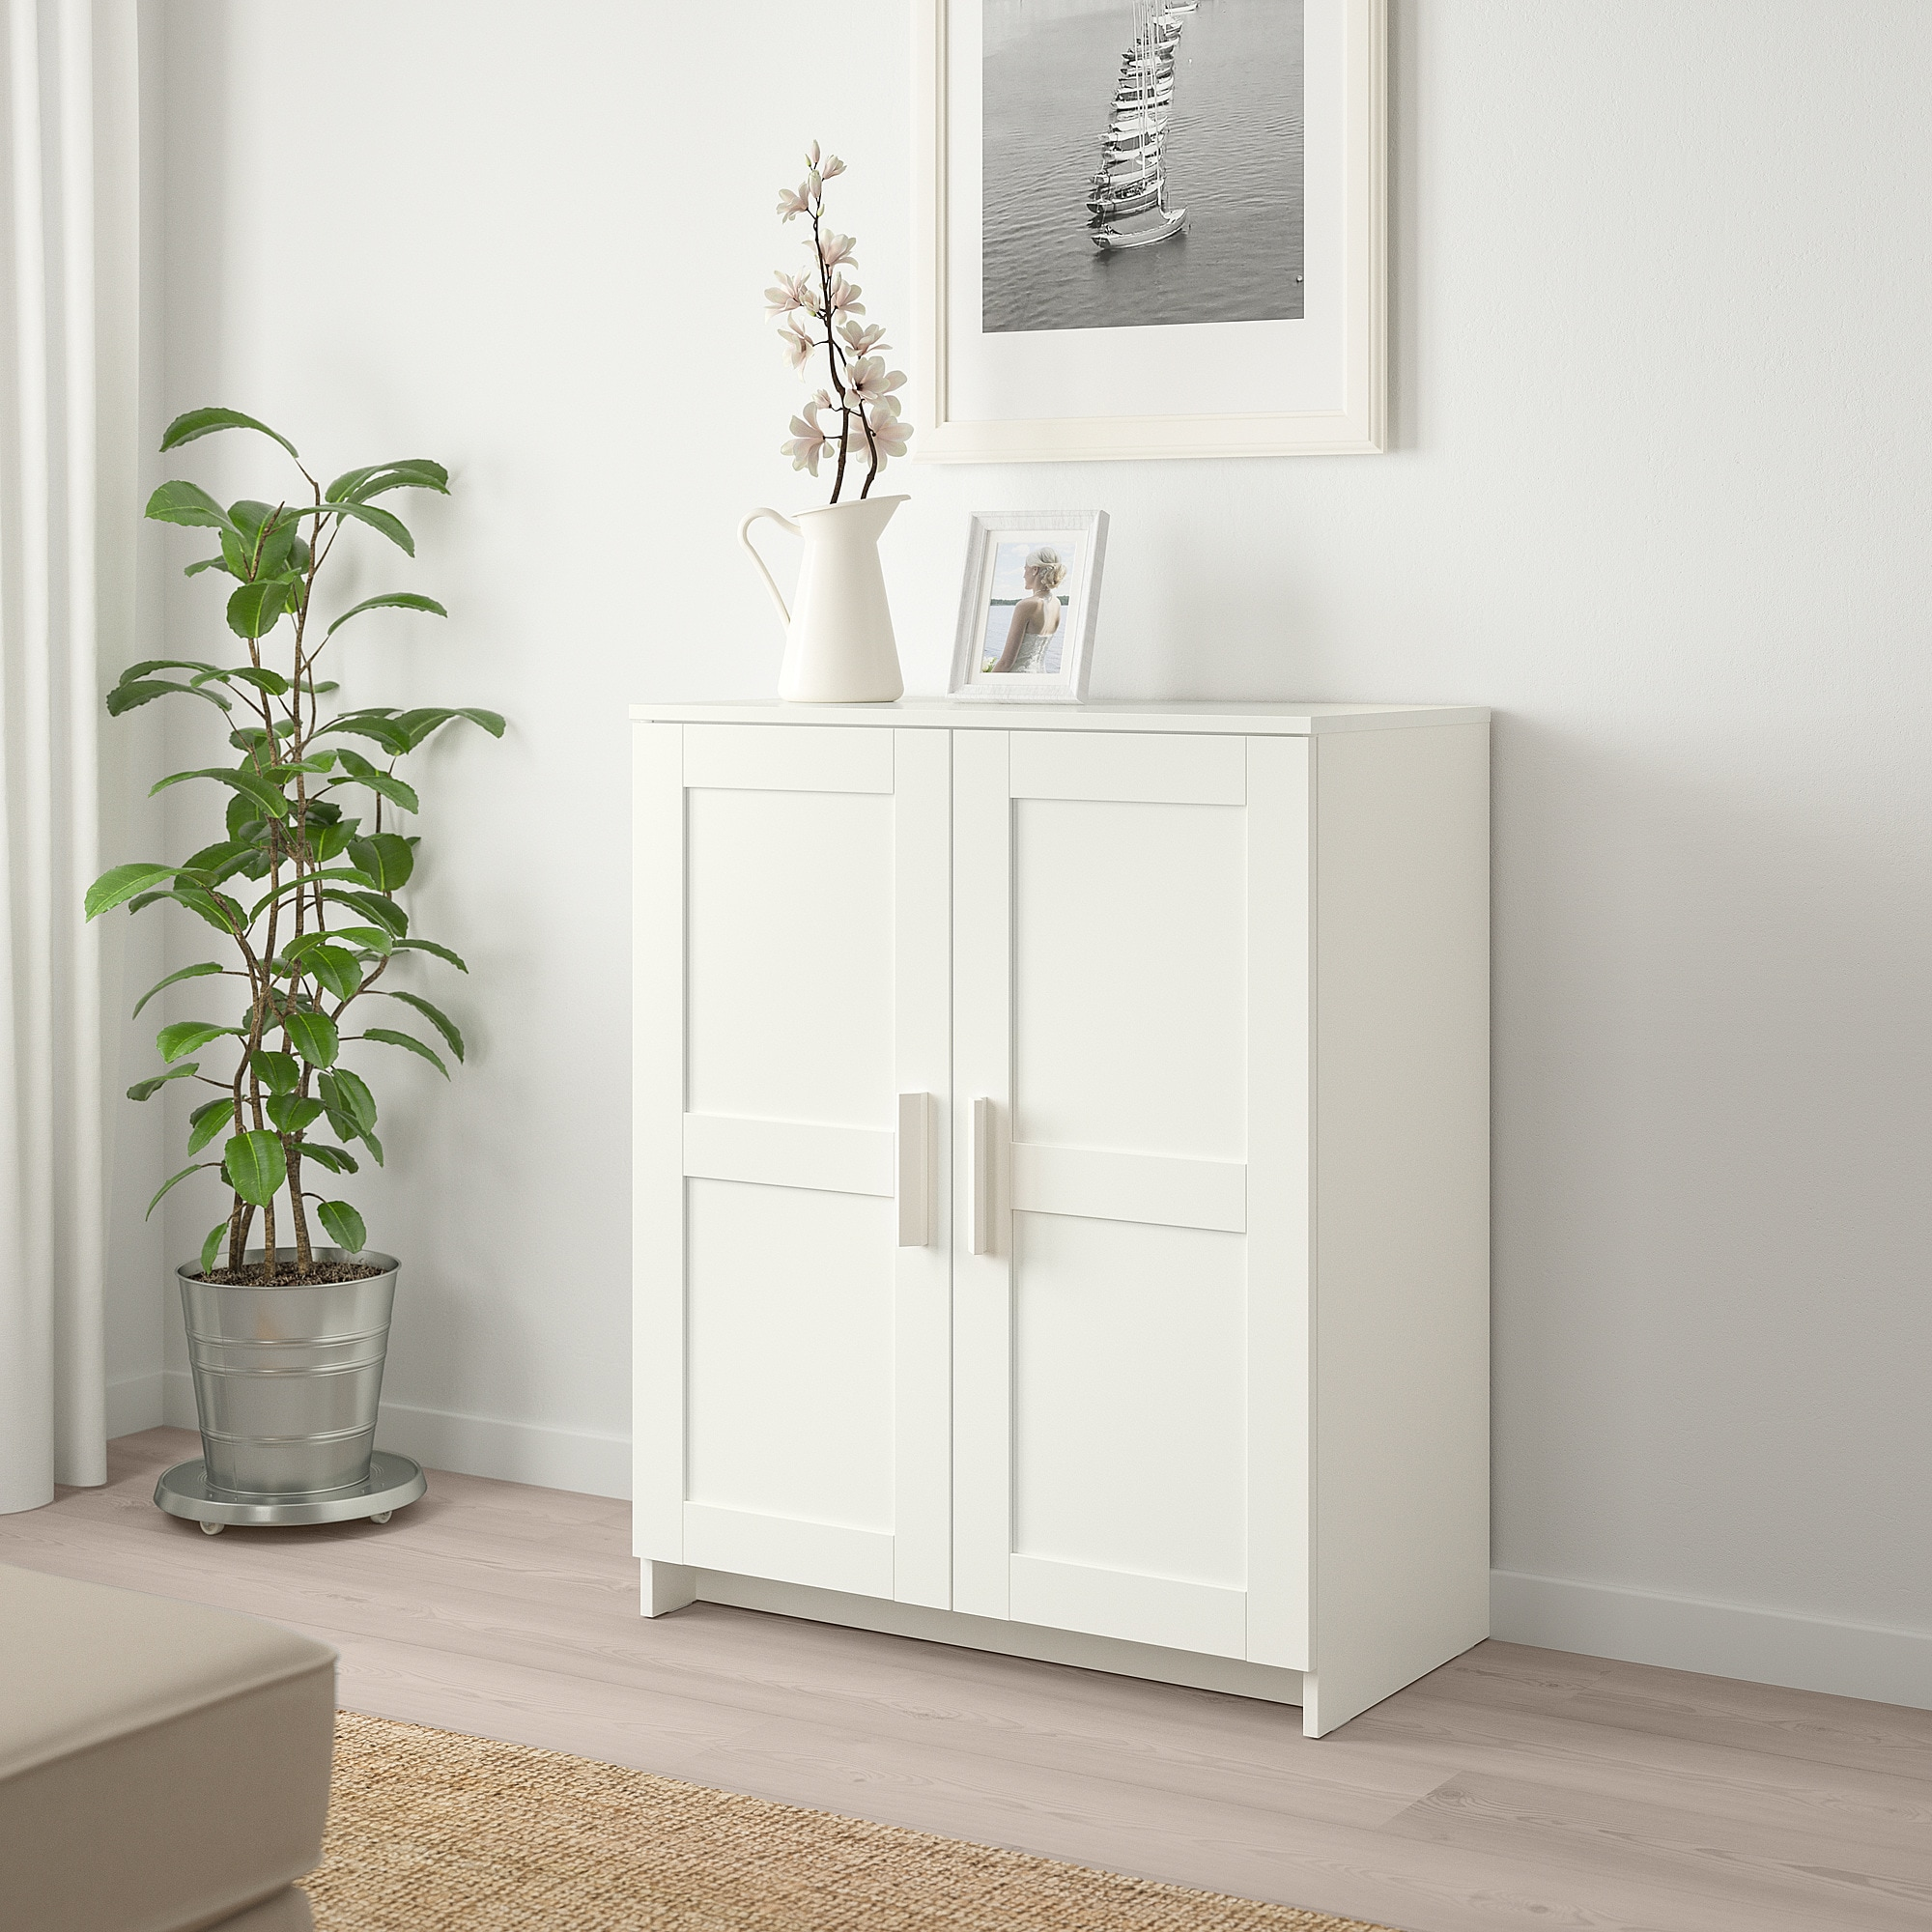 Brimnes Cabinet With Doors White 30 3 4x37 3 8 Small Storage